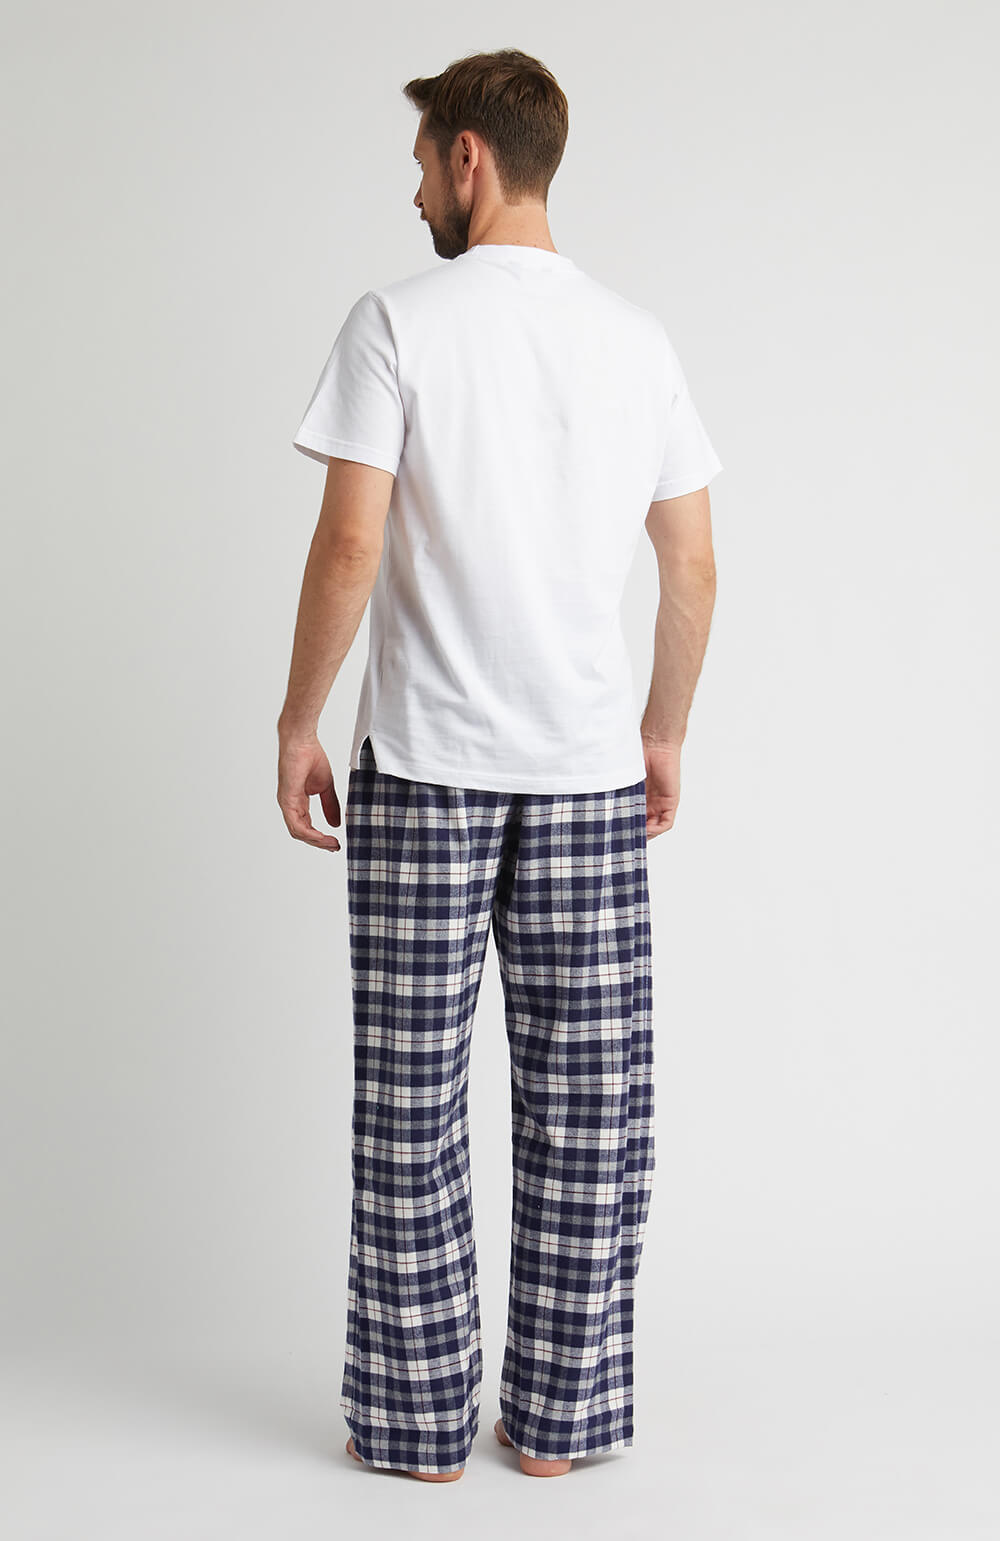 Brushed Cotton Pyjama Trousers (jm54) - McKellen | Bonsoir of London